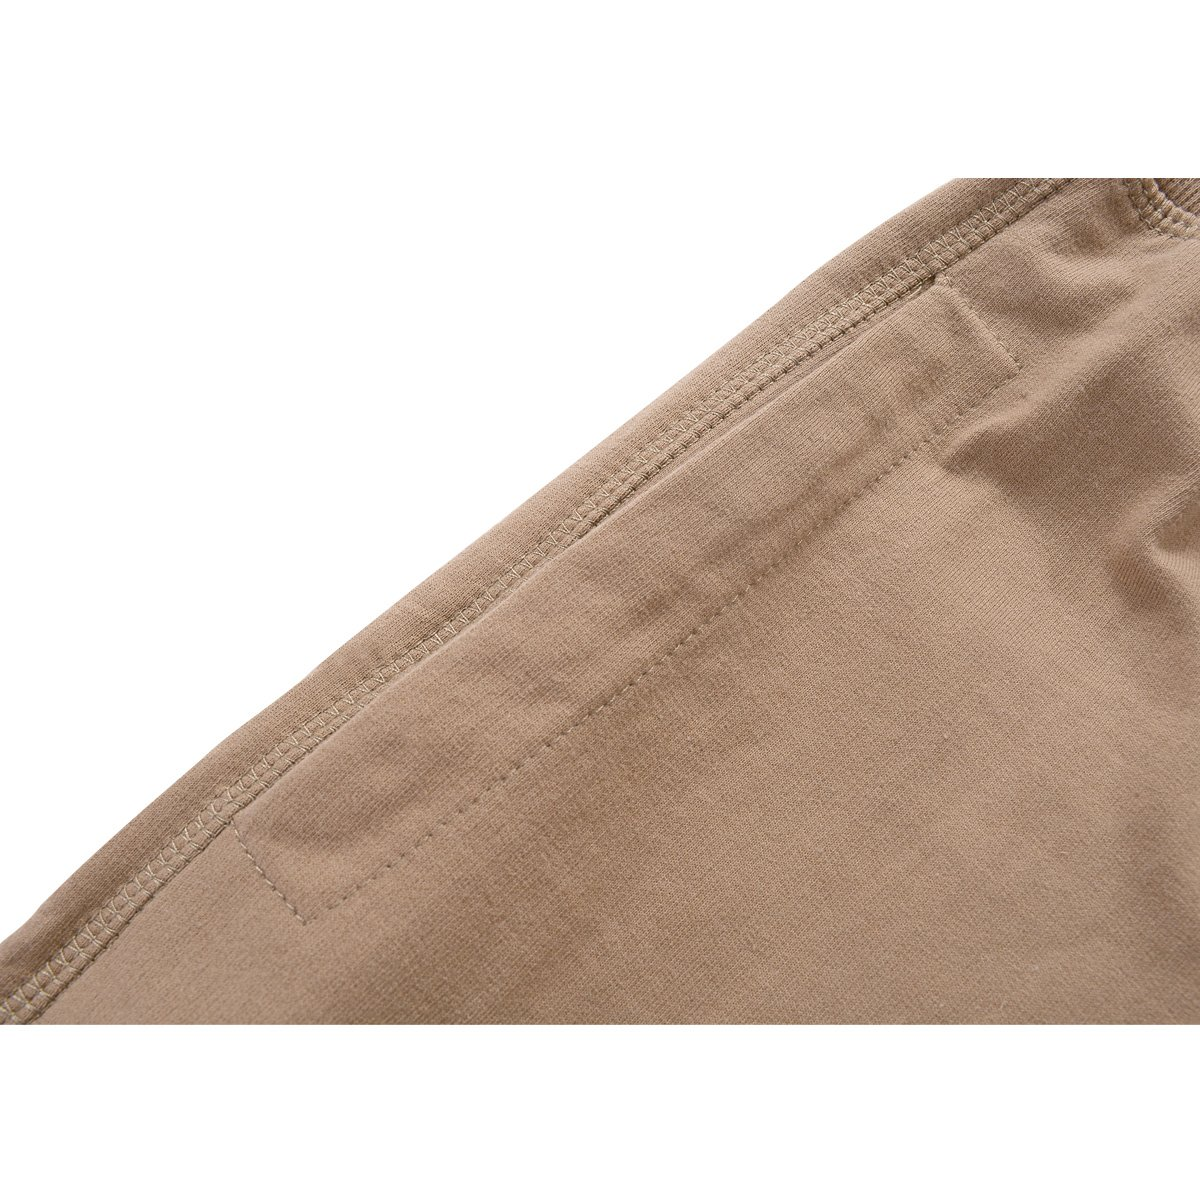 Amy Coulee Men's Cotton Casual Short with Pockets (S, Brown) by Amy Coulee (Image #7)